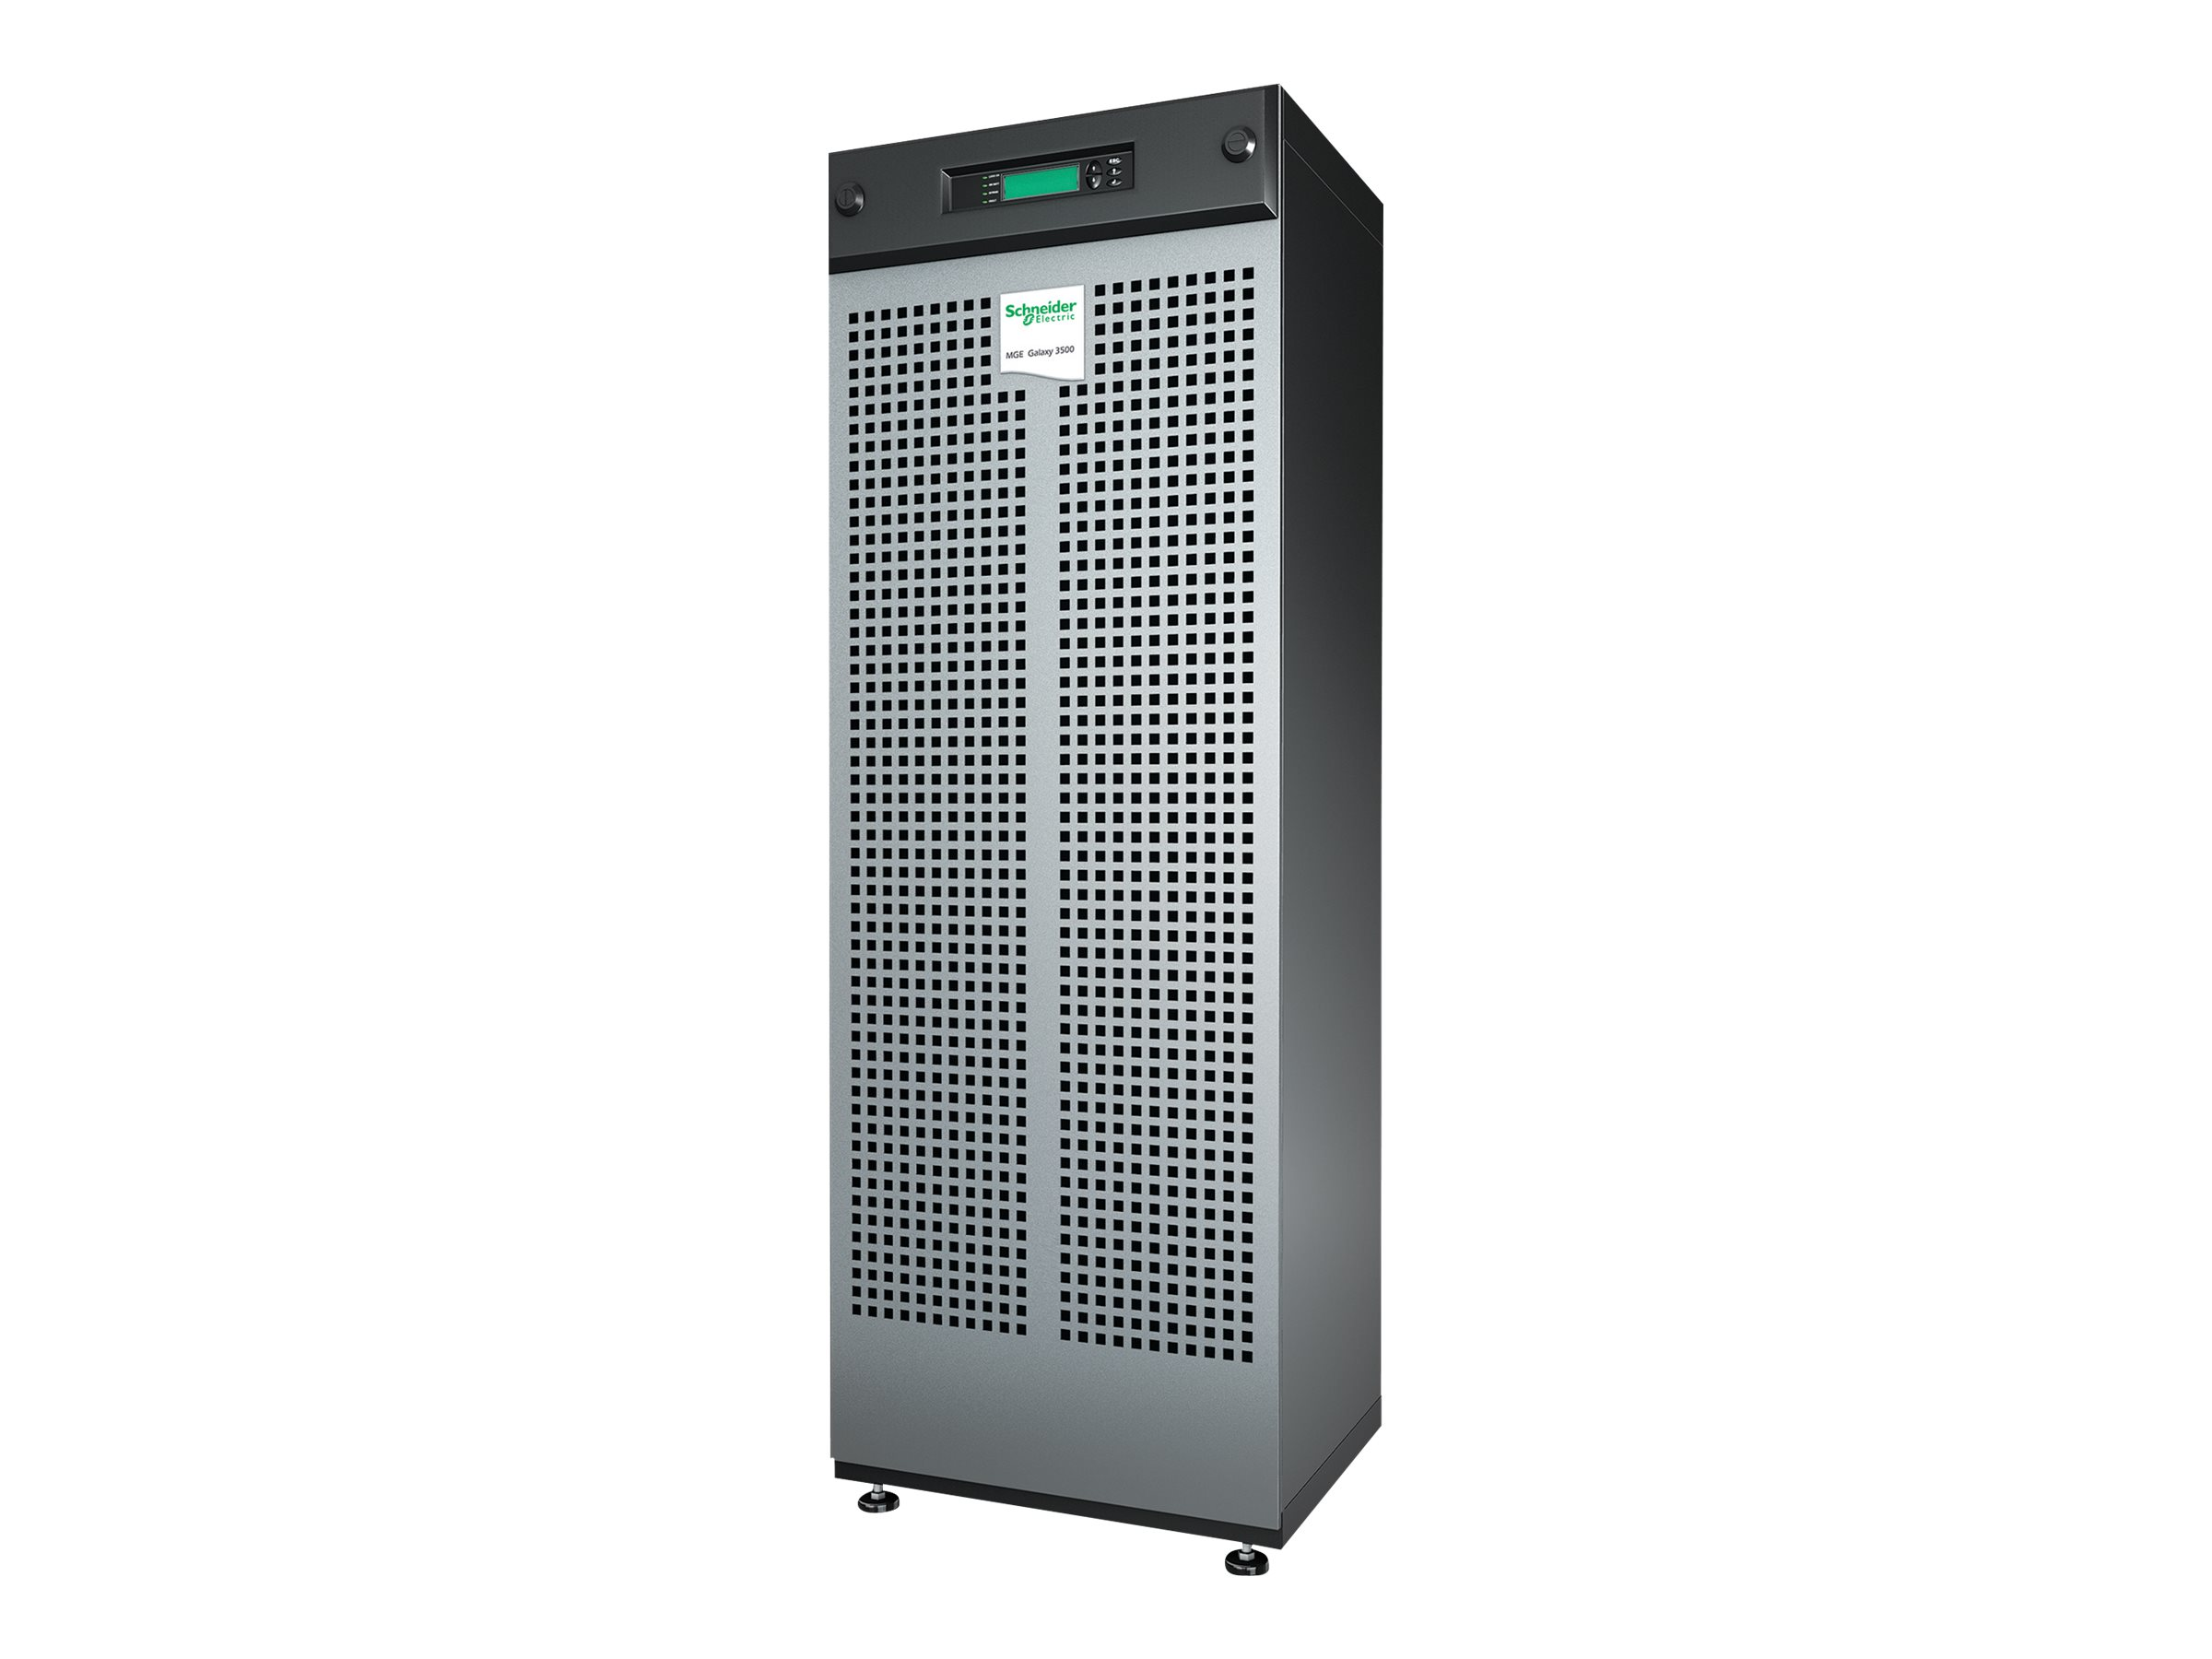 MGE Galaxy 3500 with 3 Battery Modules Expandable to 4 - UPS - 12 kW - 15000 VA